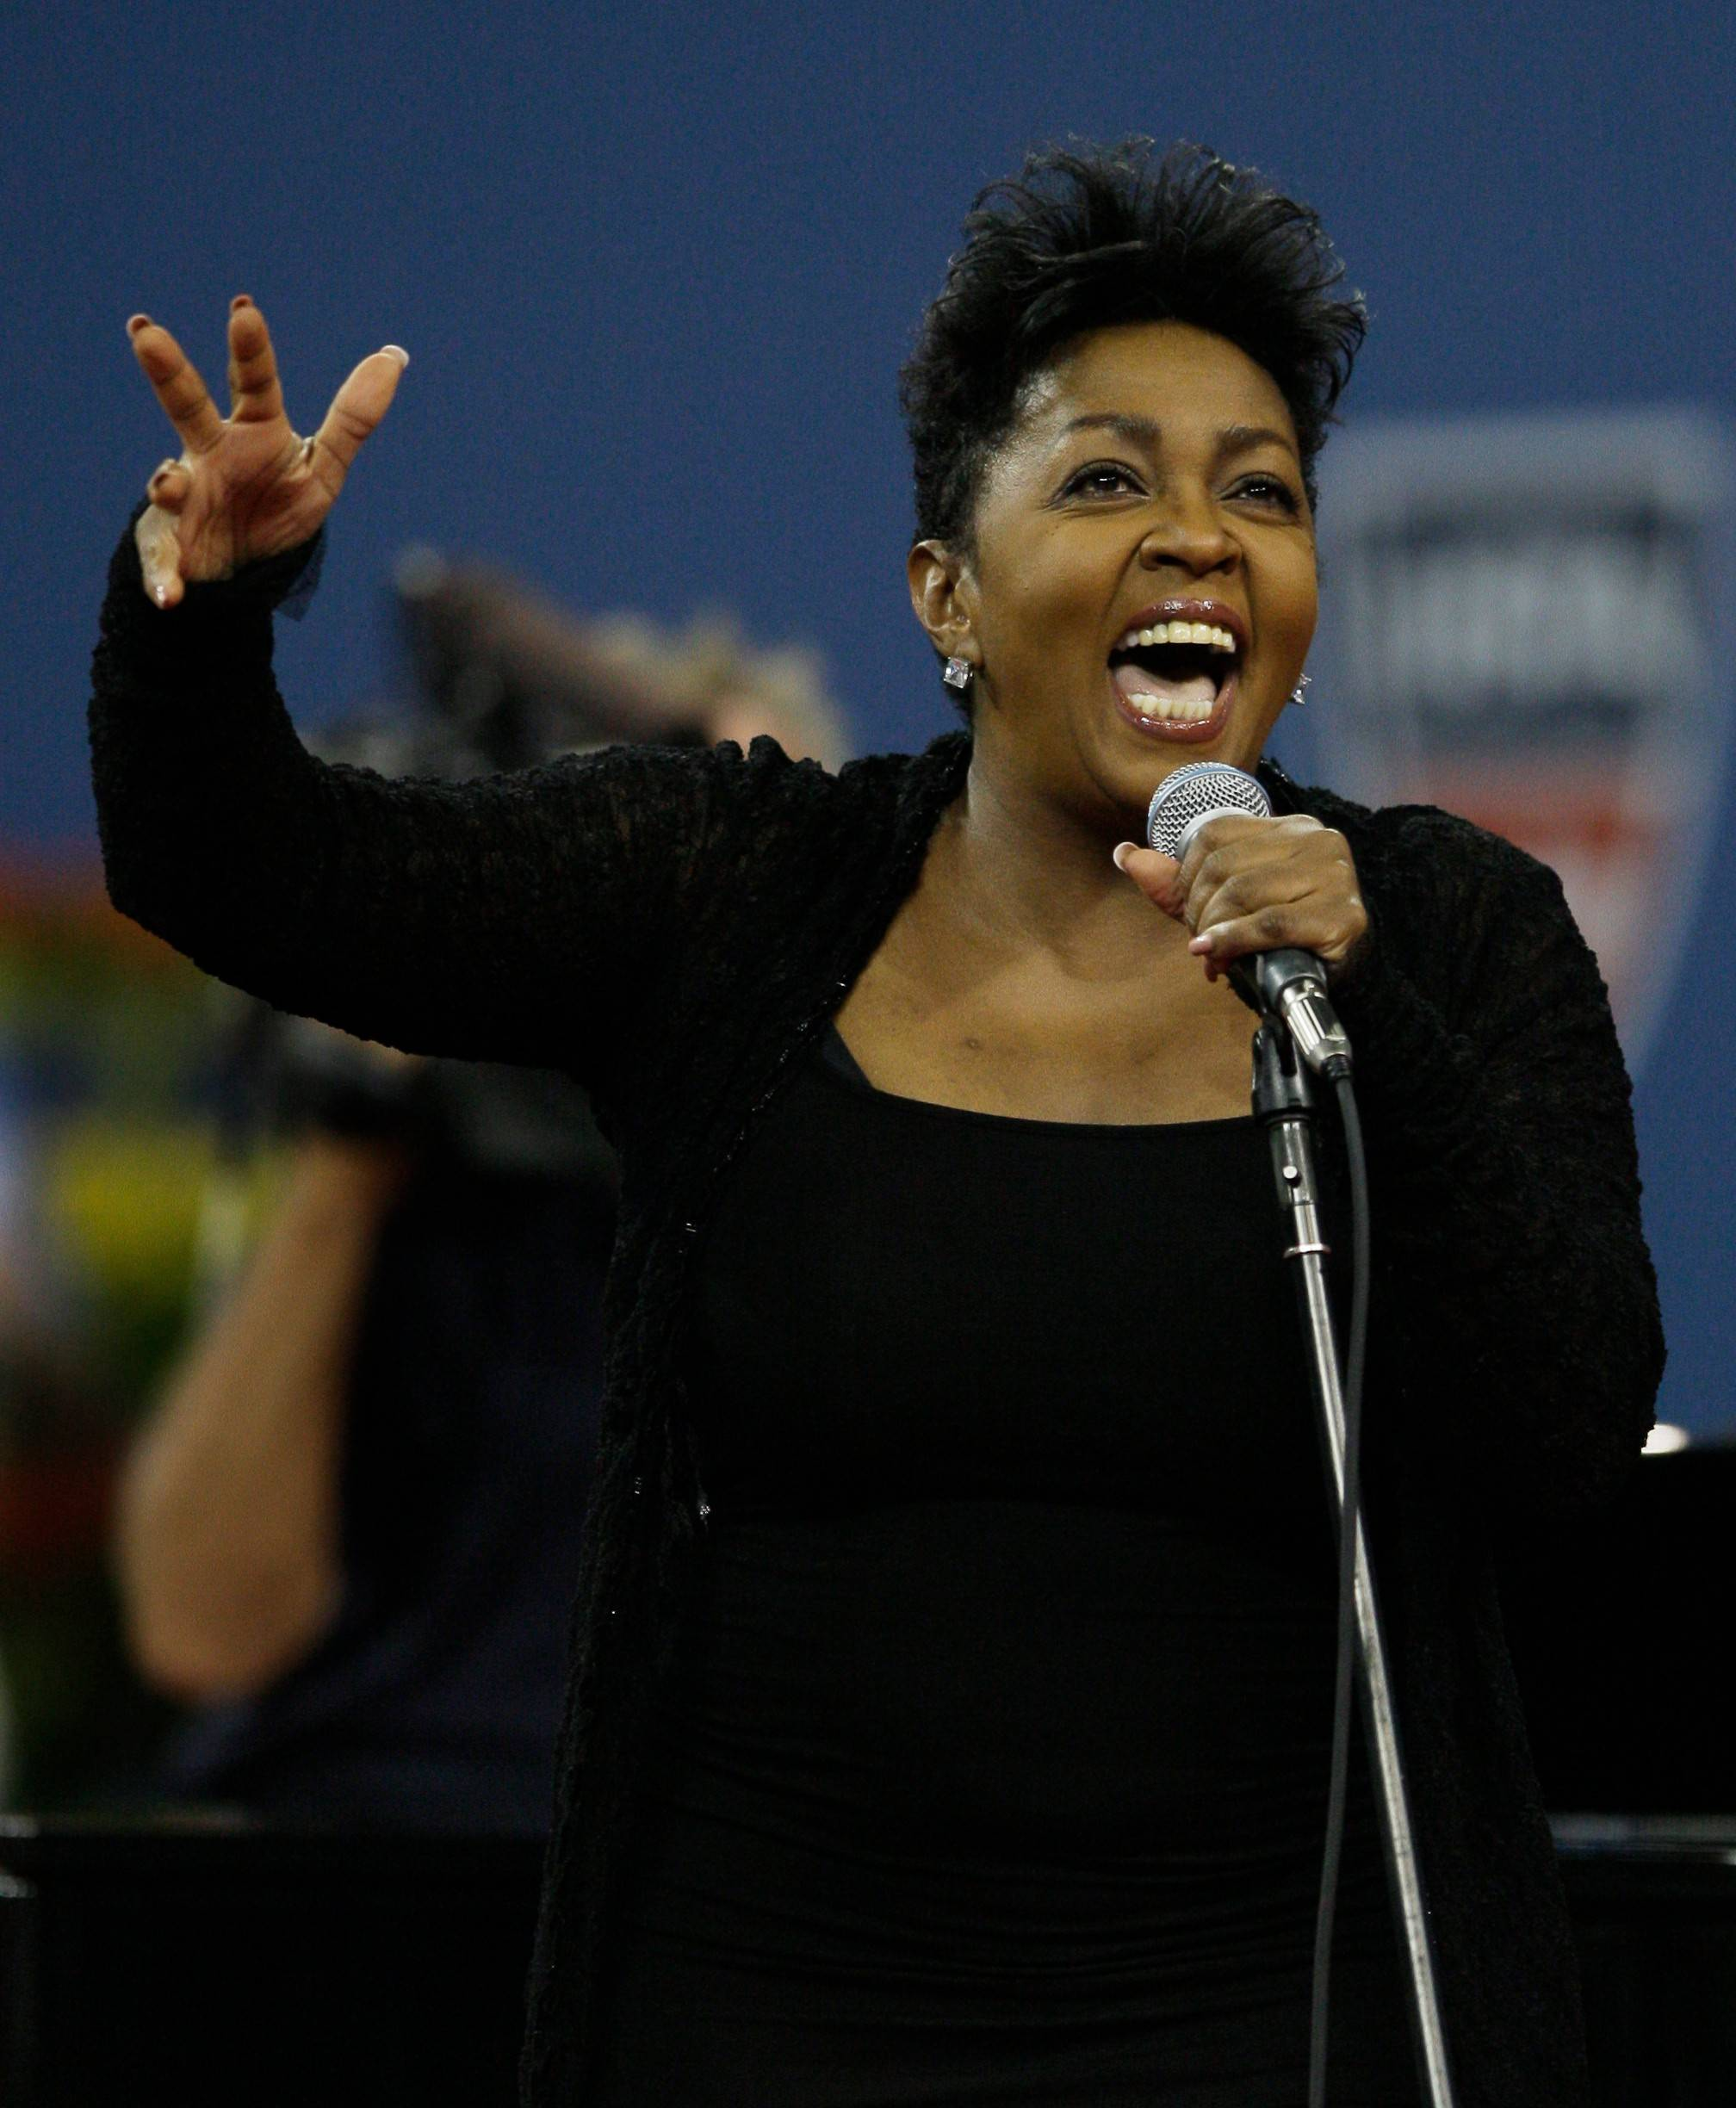 Singer Anita Baker is being sued by her former lawyer for more than a year's worth of work and expenses.